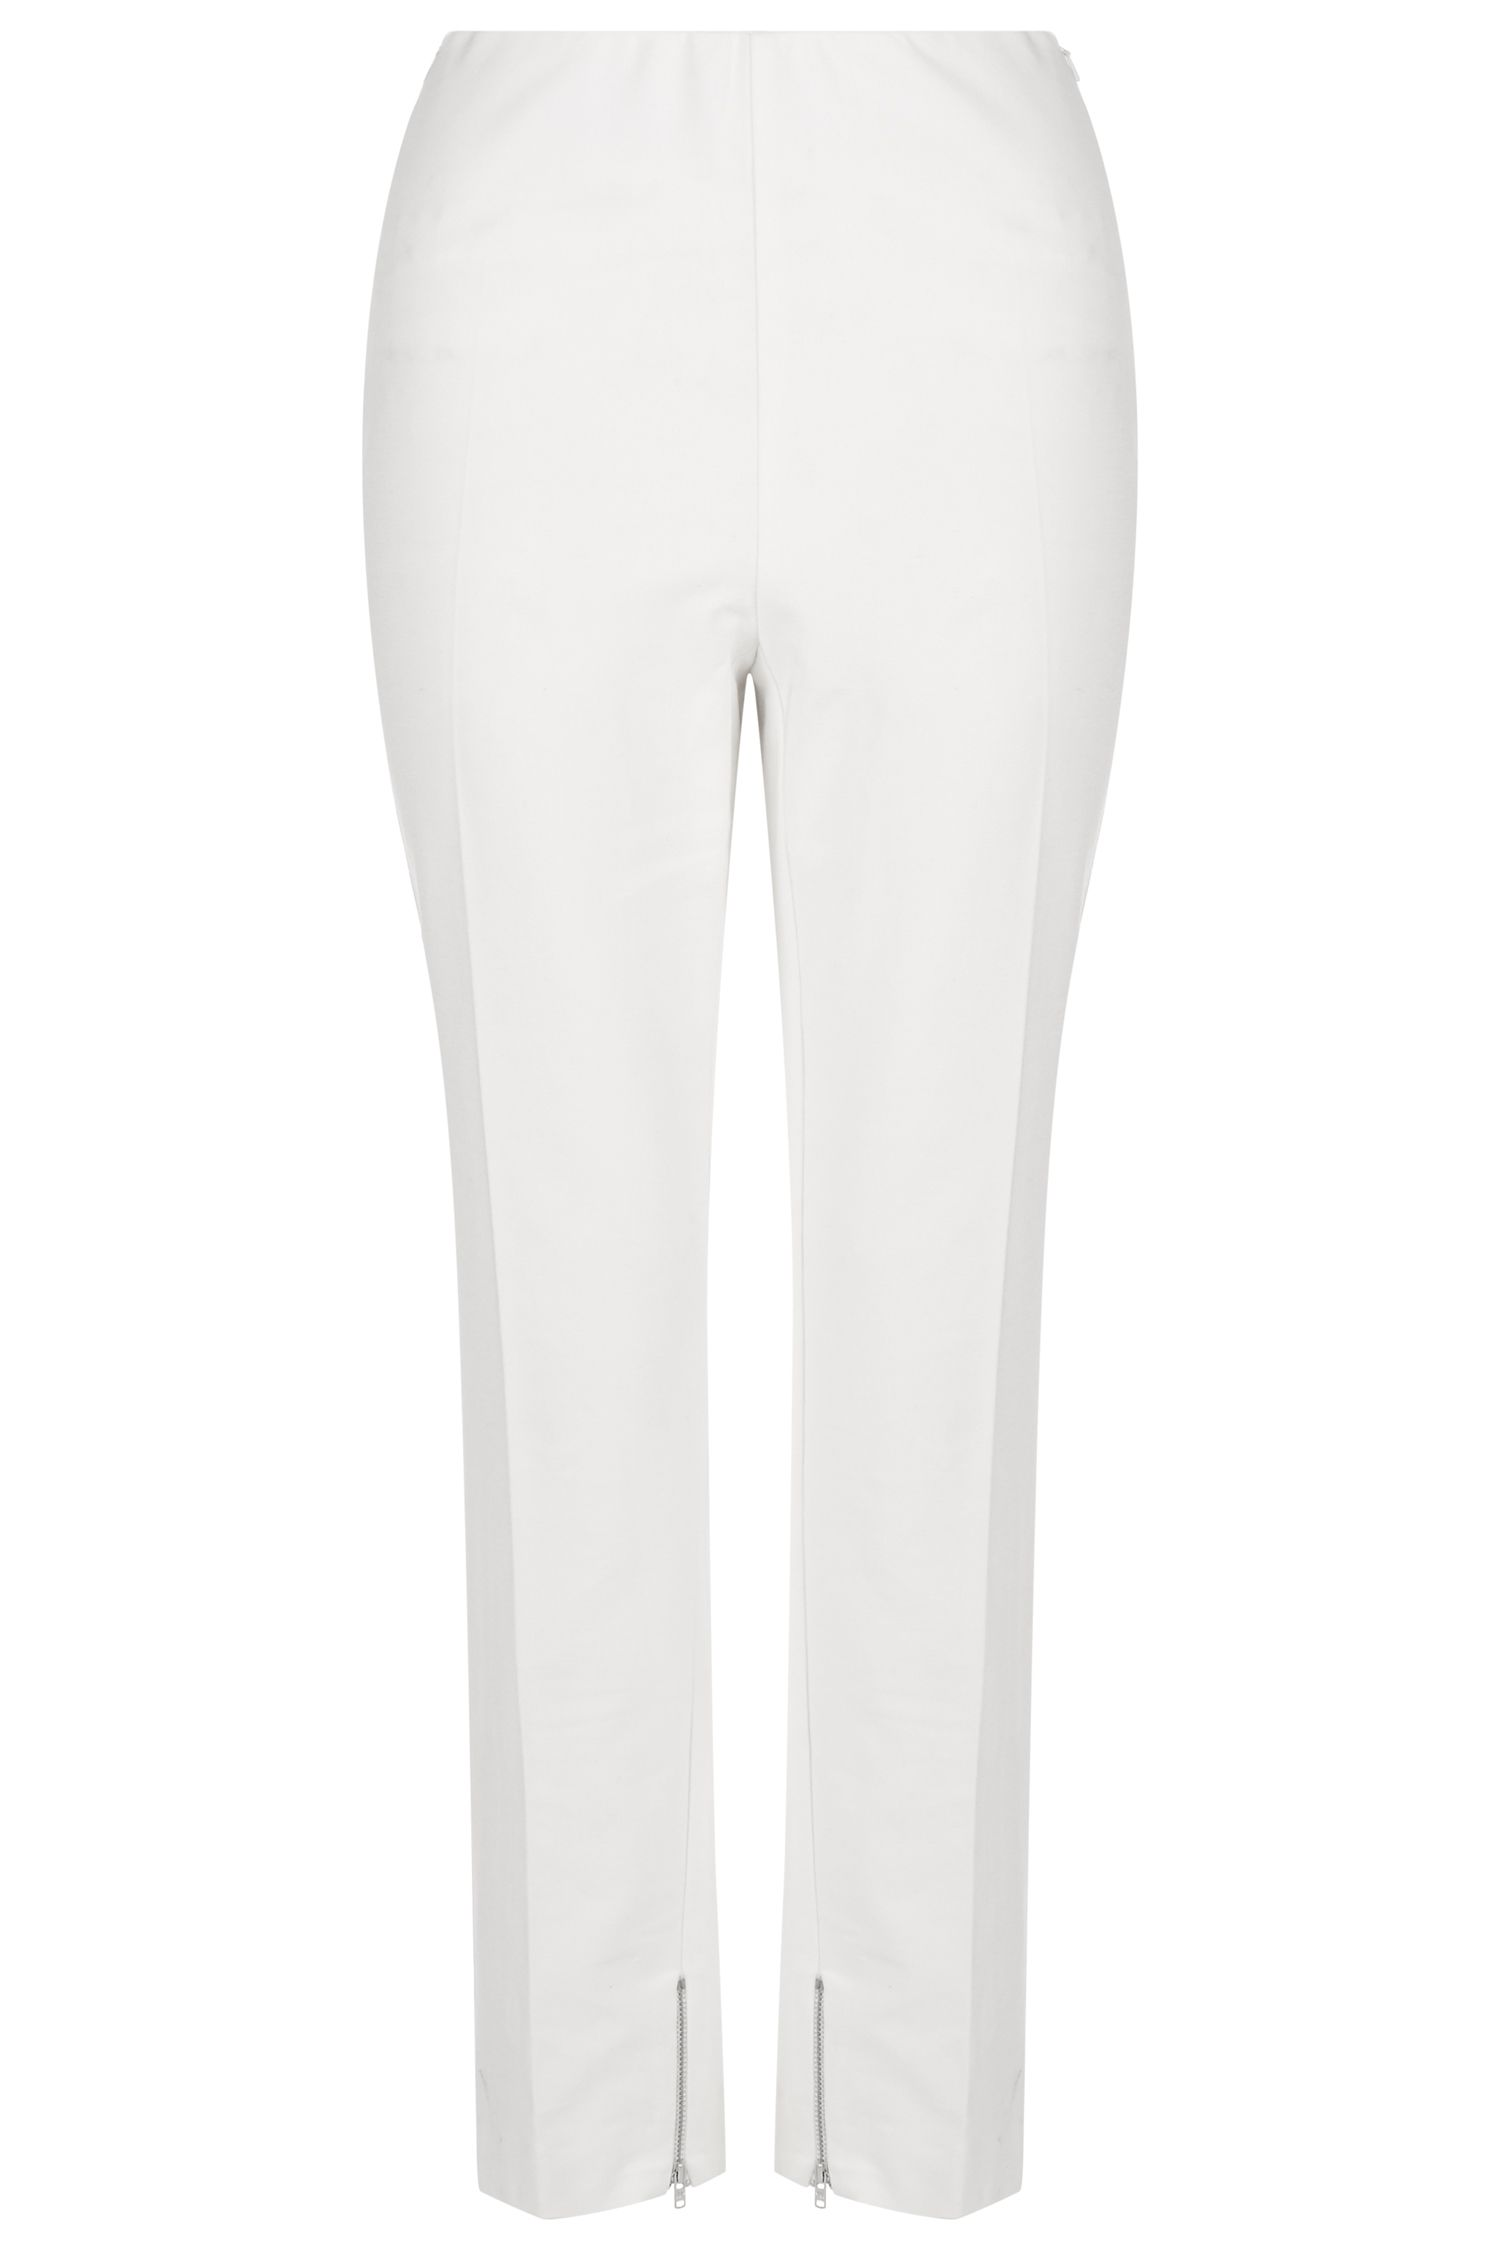 Damsel in a Dress Cropped Trousers, White